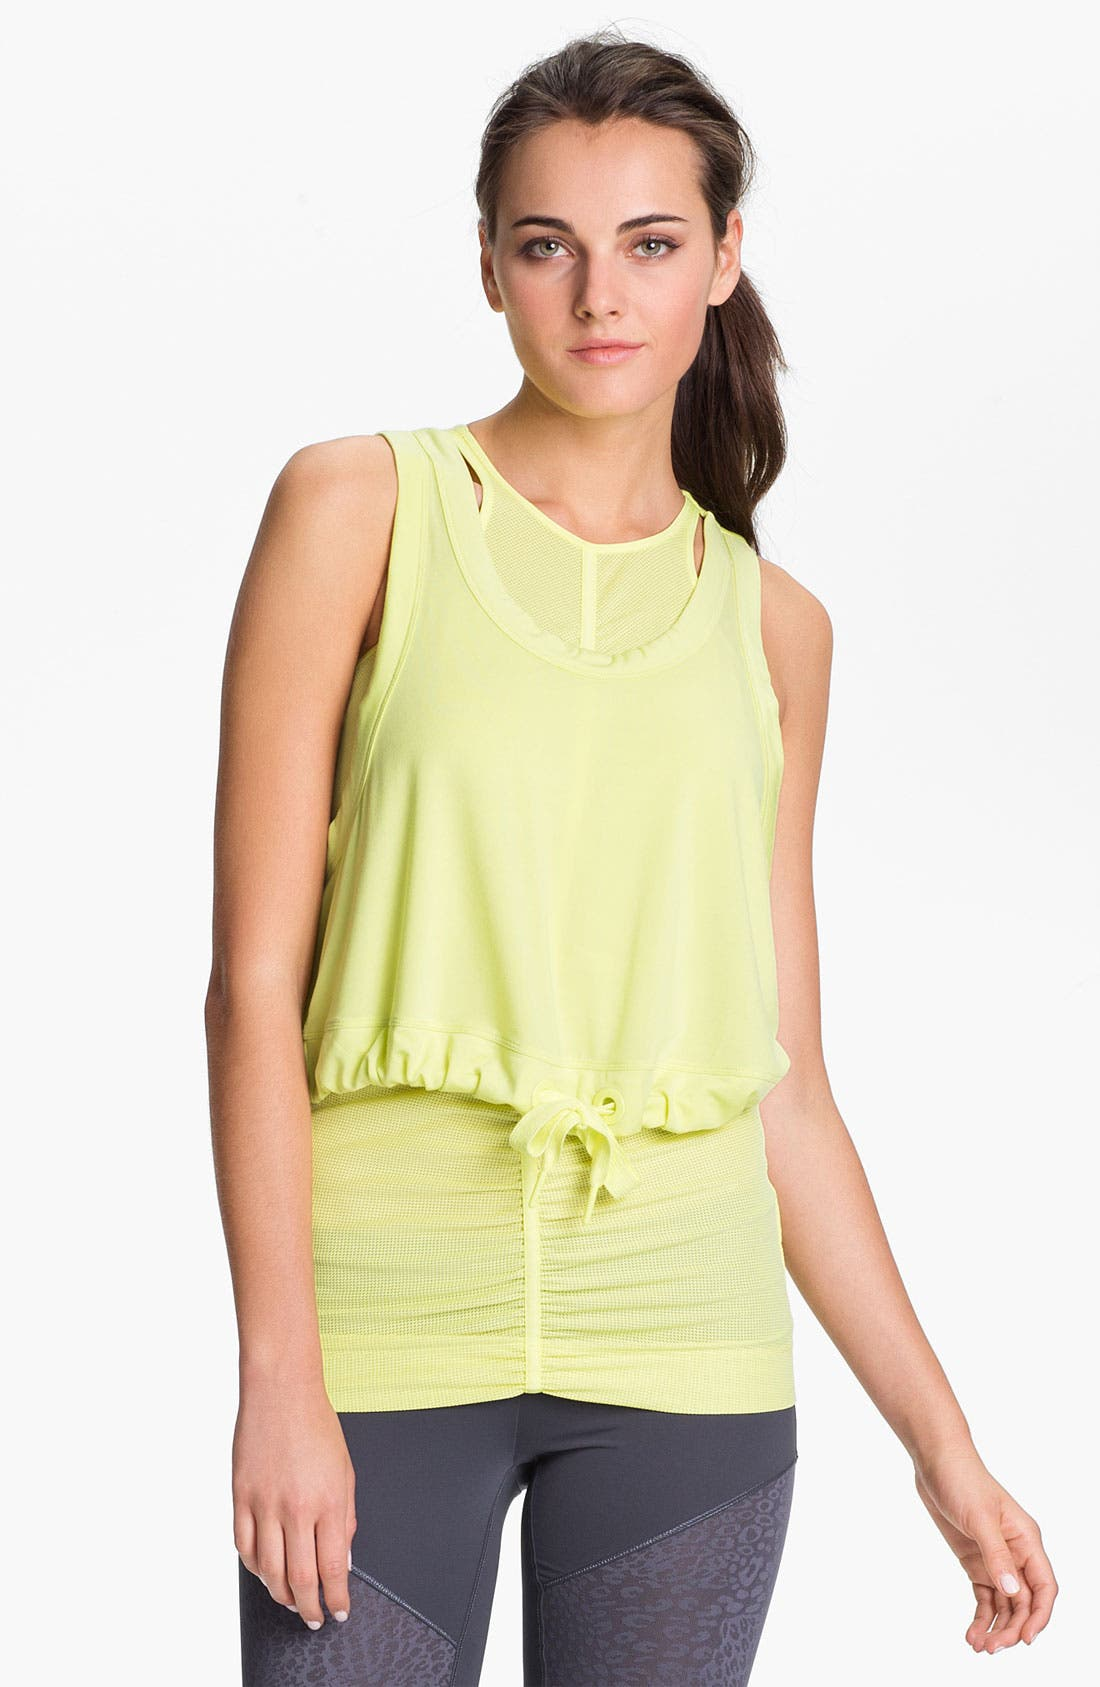 Main Image - adidas by Stella McCartney 'Tennis' Performance Tank